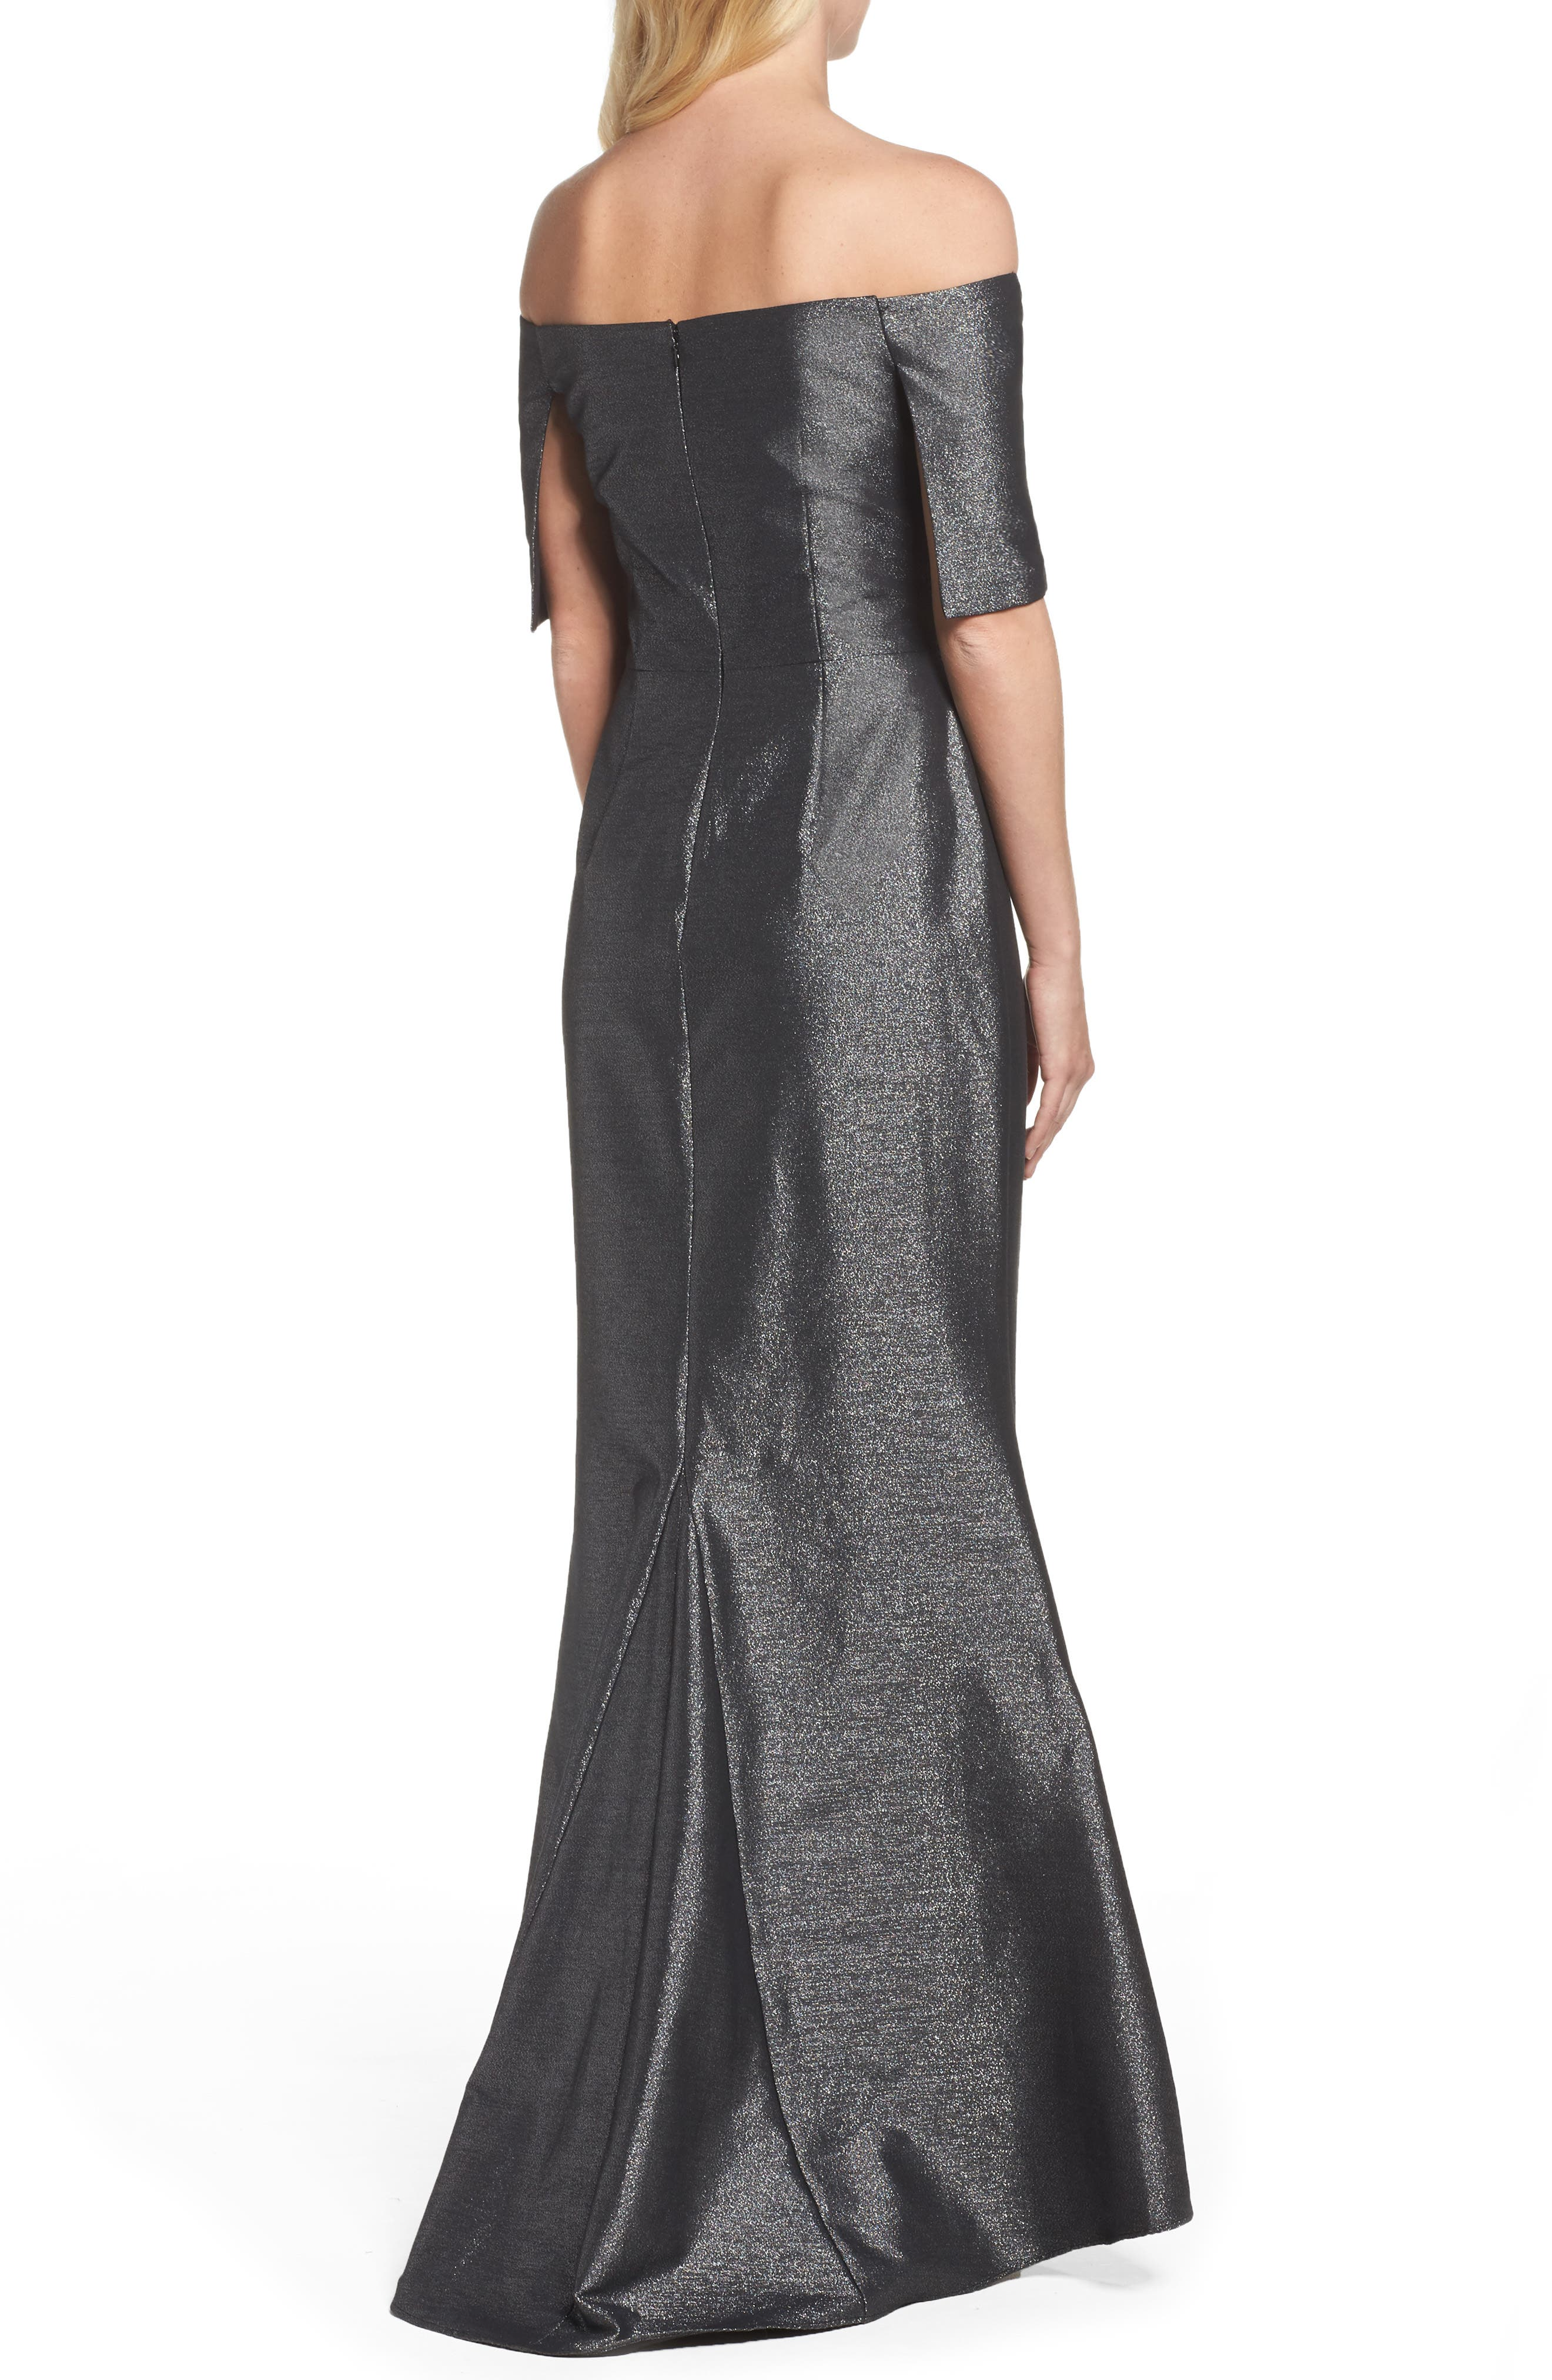 Ruched Metallic Knit Off the Shoulder Gown,                             Alternate thumbnail 2, color,                             040